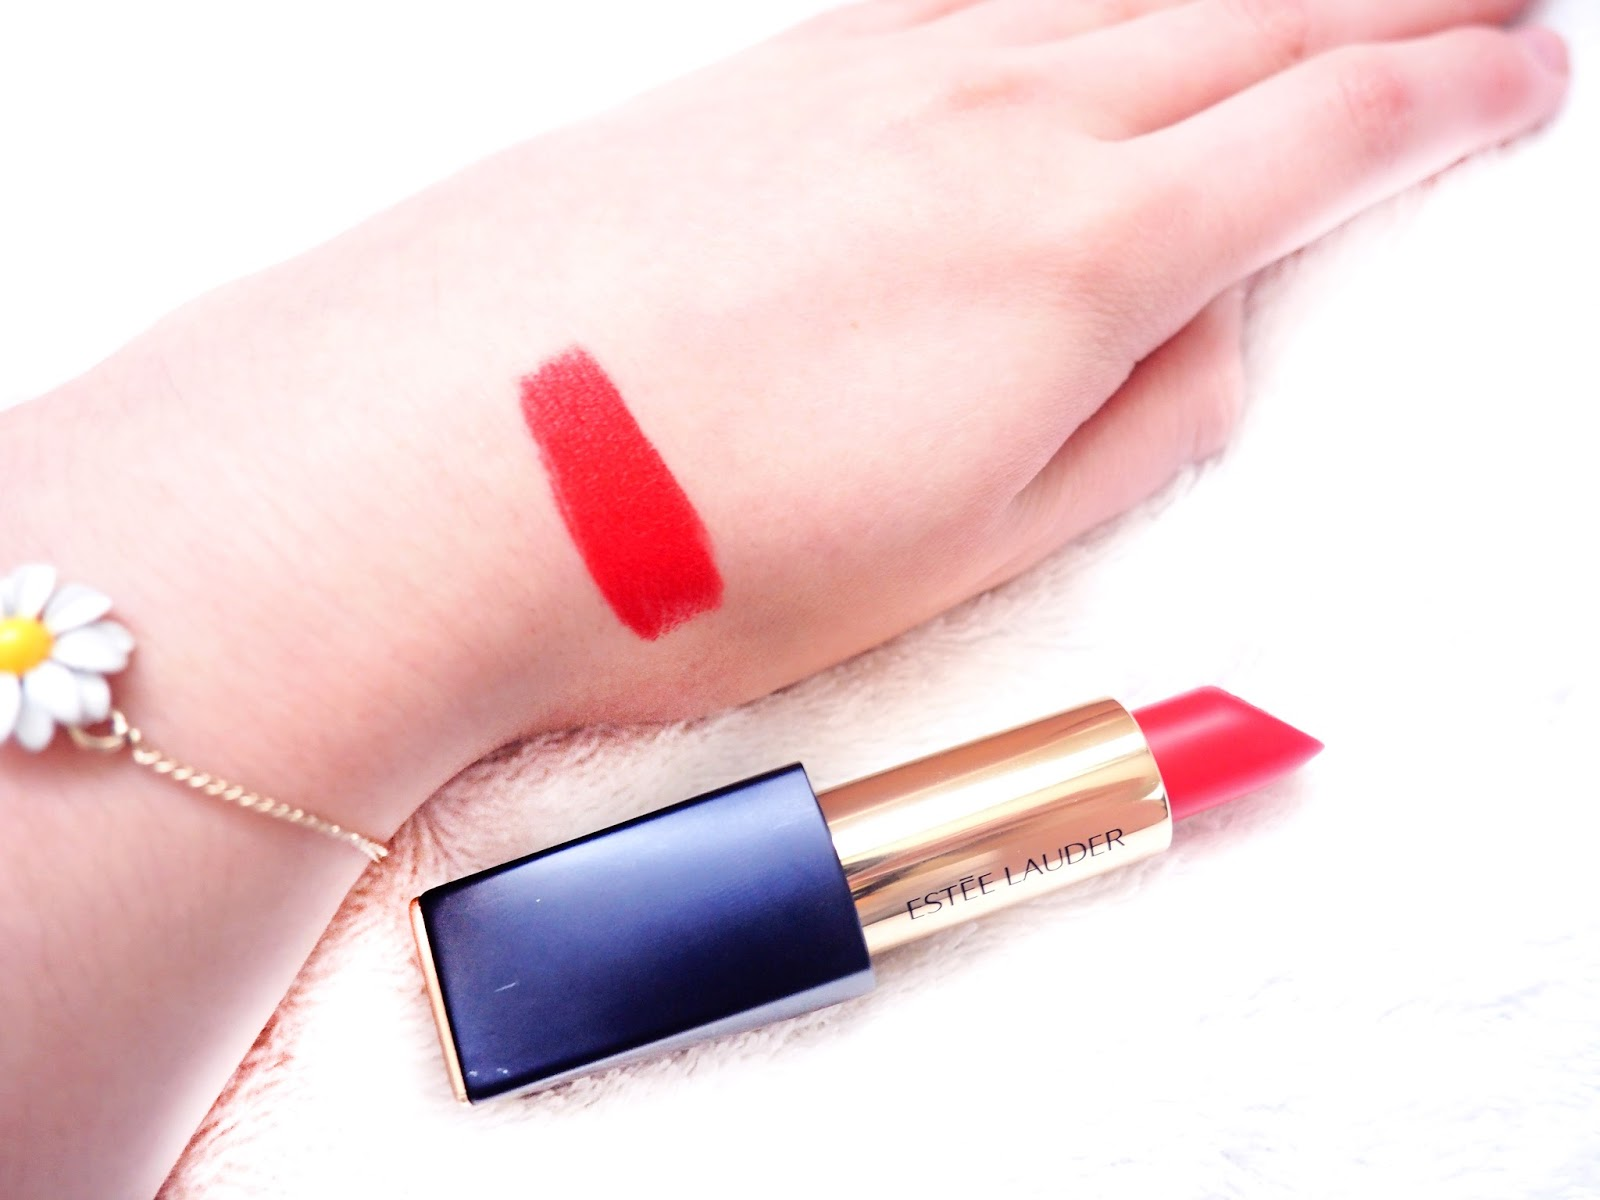 Estée Lauder Pure Colour Envy Matte Sculpting Lipstick Restless Review